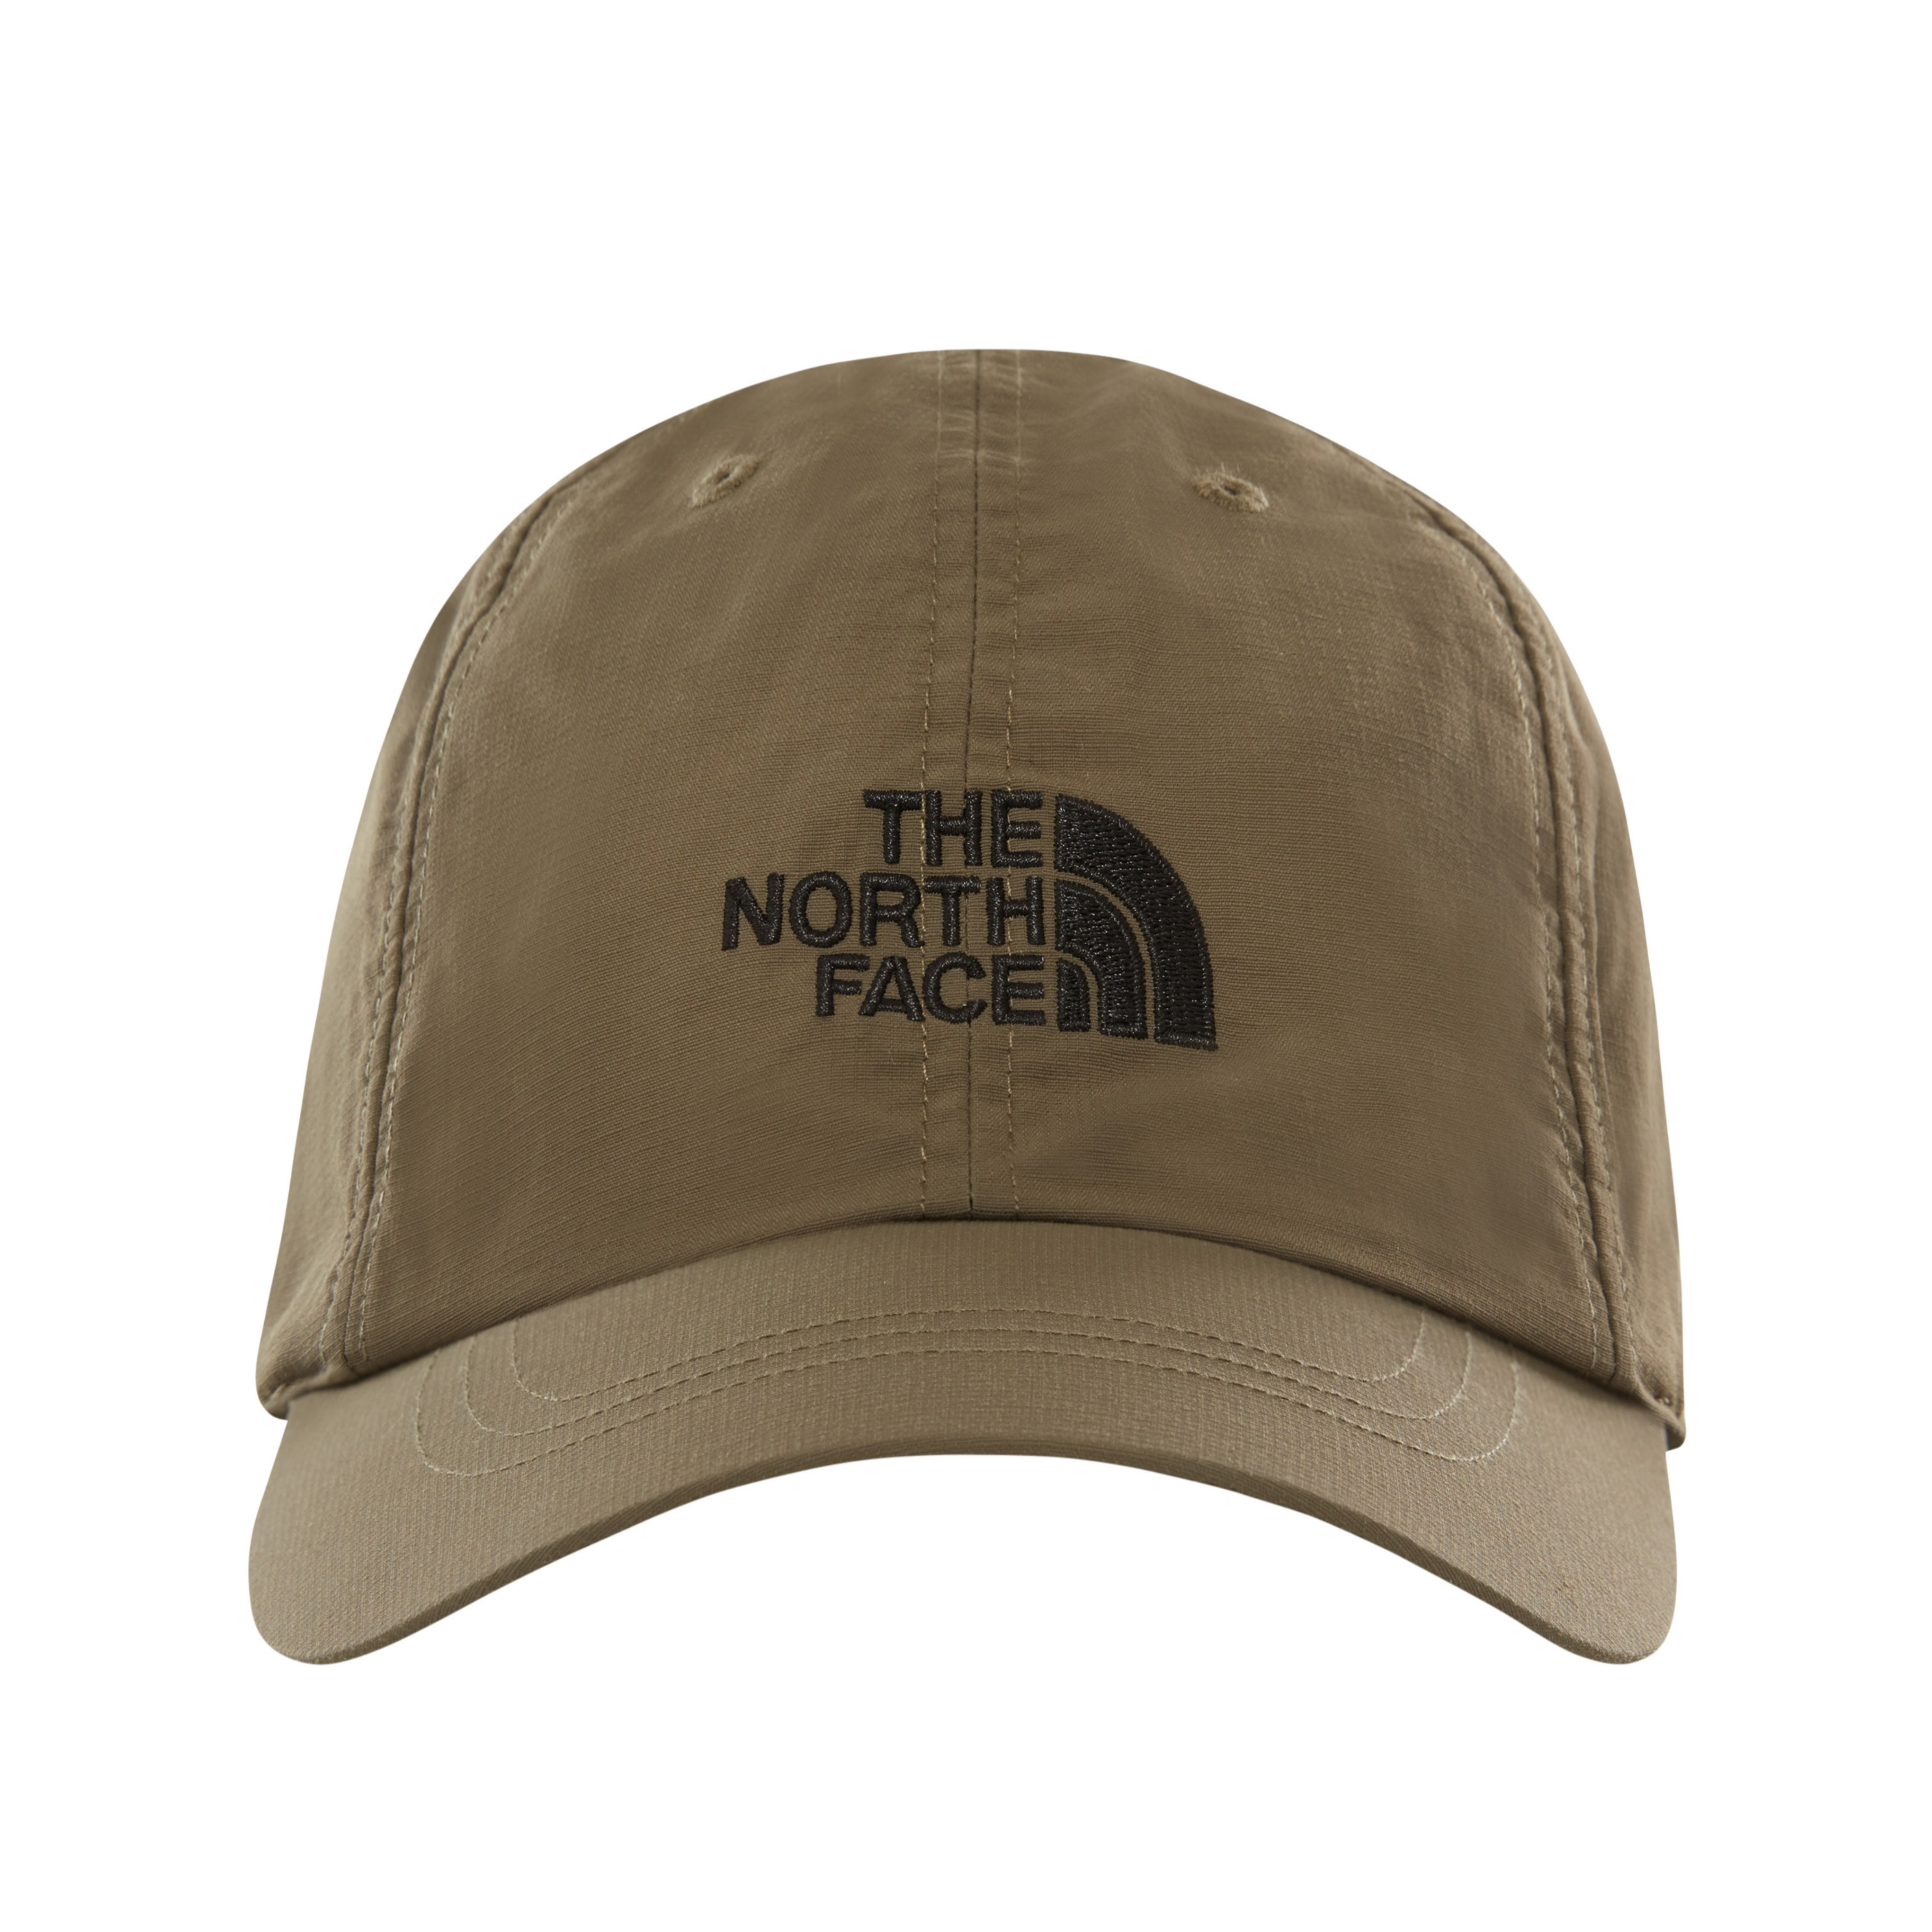 The North Face Horizon Hat - Cappelli  96085a7272b4